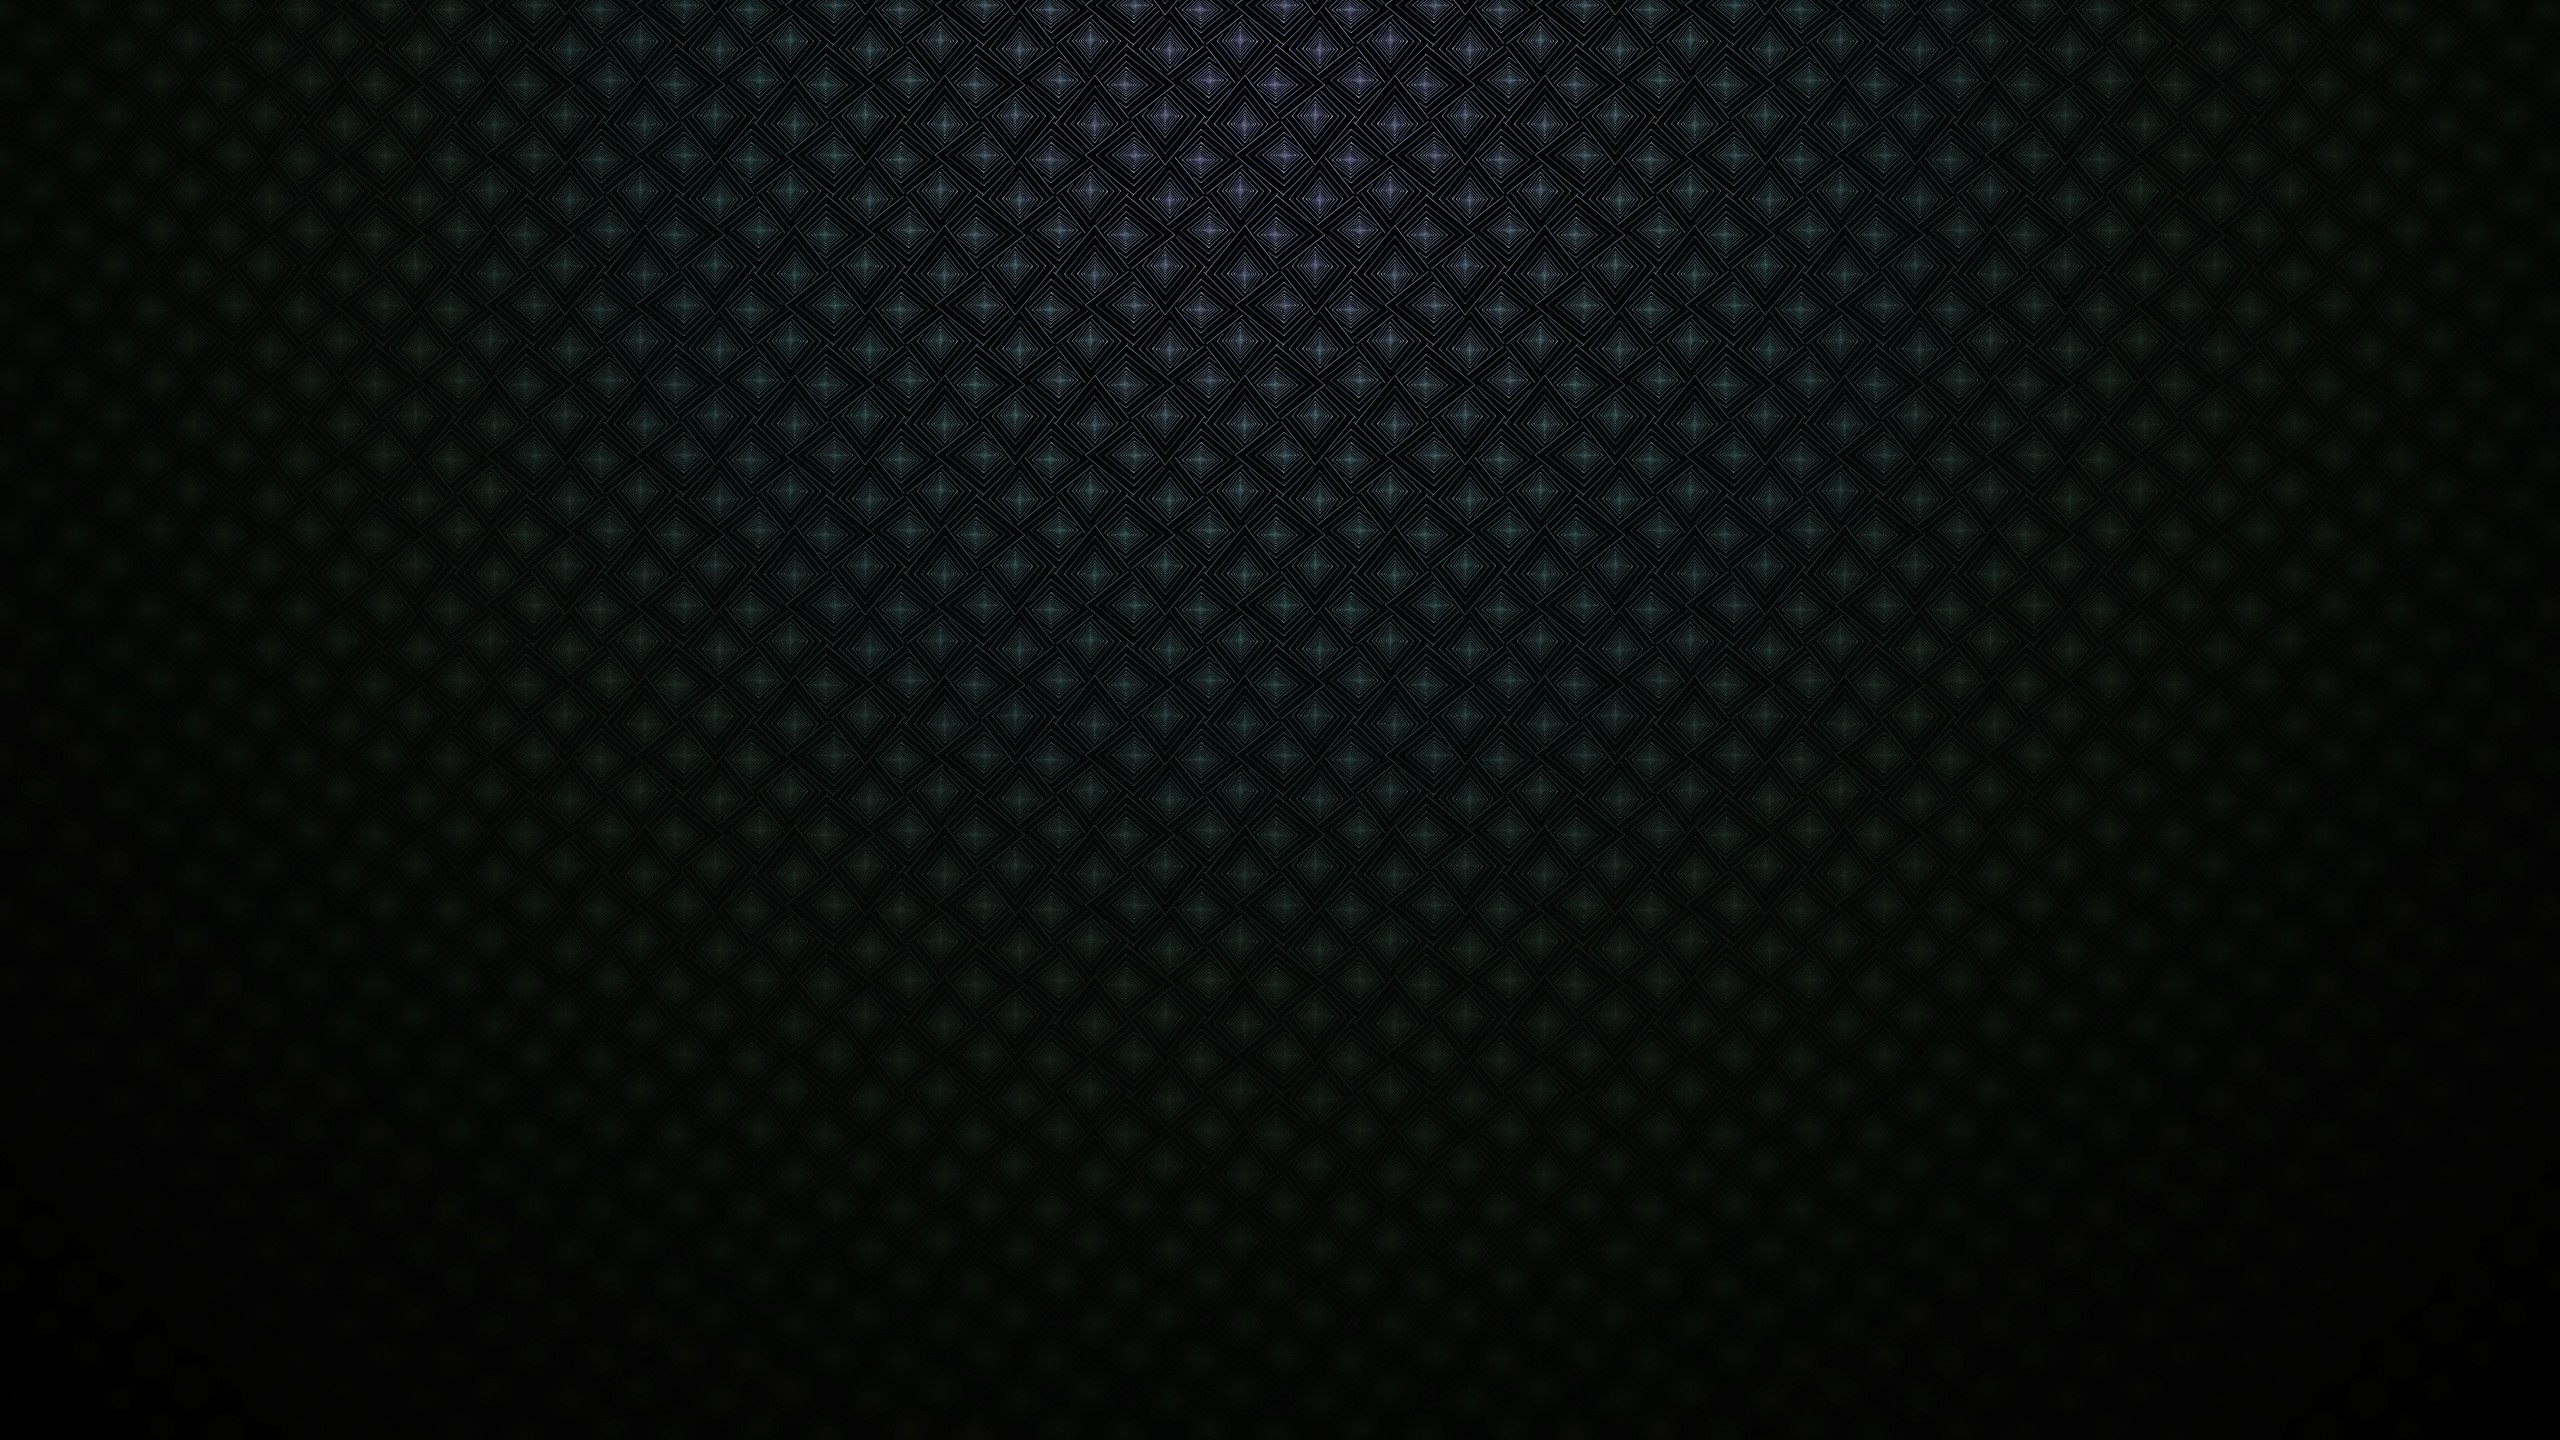 Black Gradient Background Texture   Viewing Gallery 2560x1440